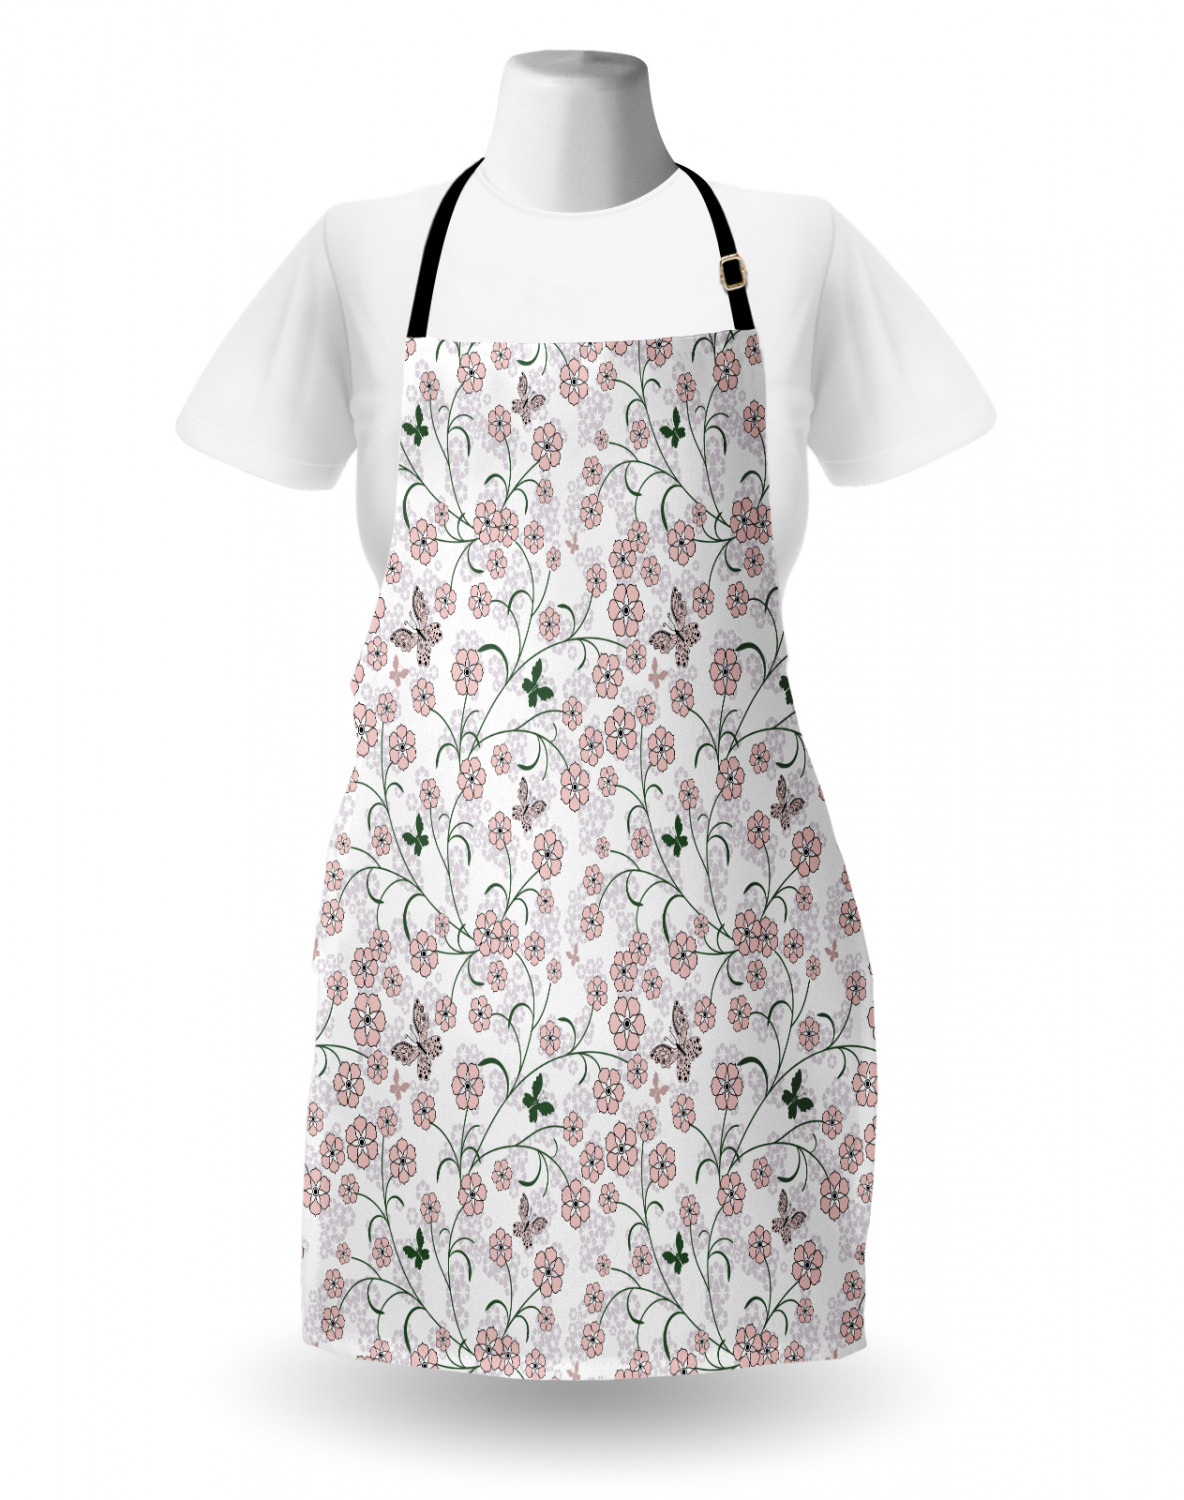 Ambesonne-Outdoor-Use-Apron-with-Adjustable-Neck-Strap-for-Gardening-and-Cooking miniatura 68